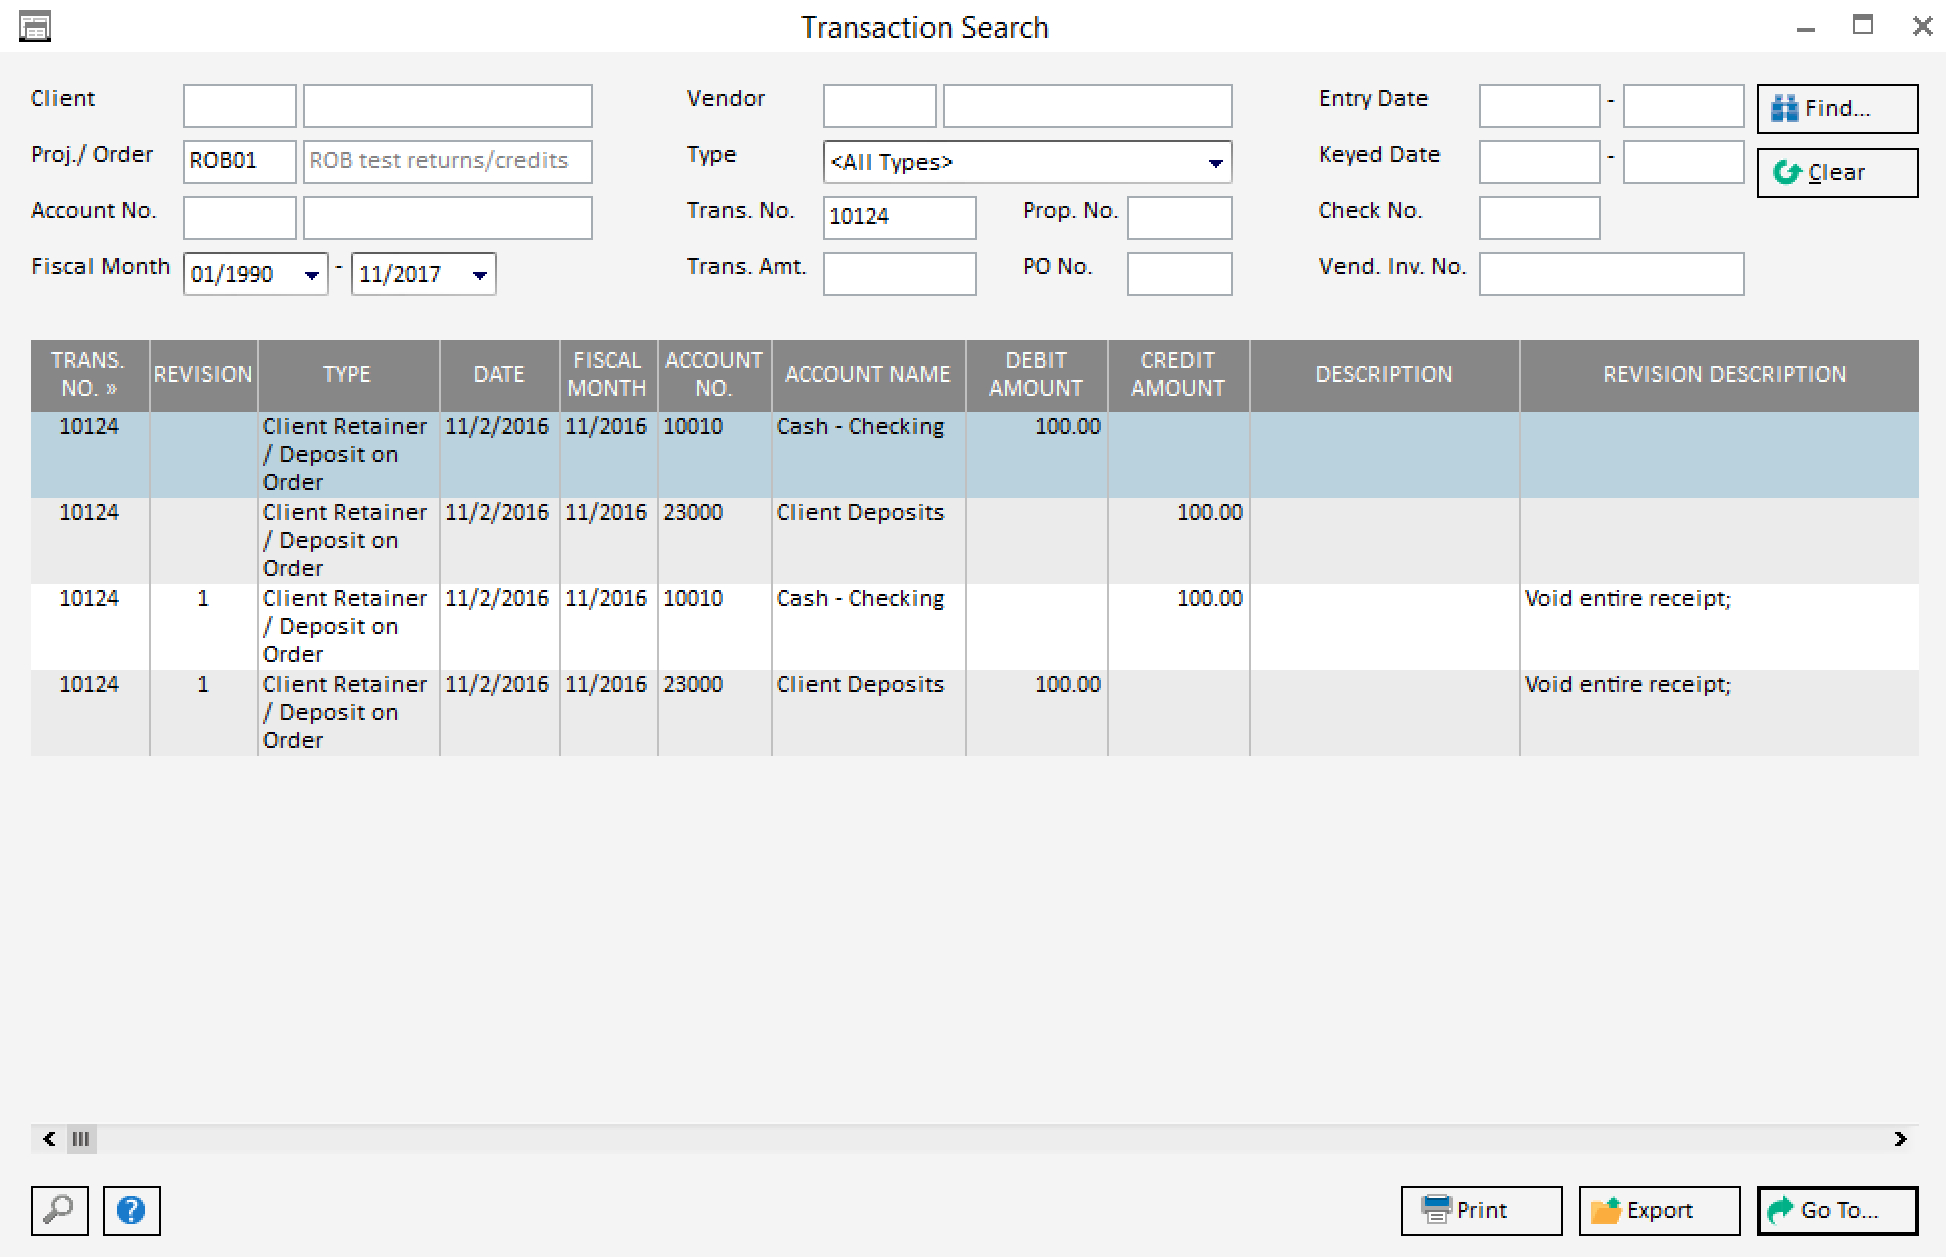 transaction search window